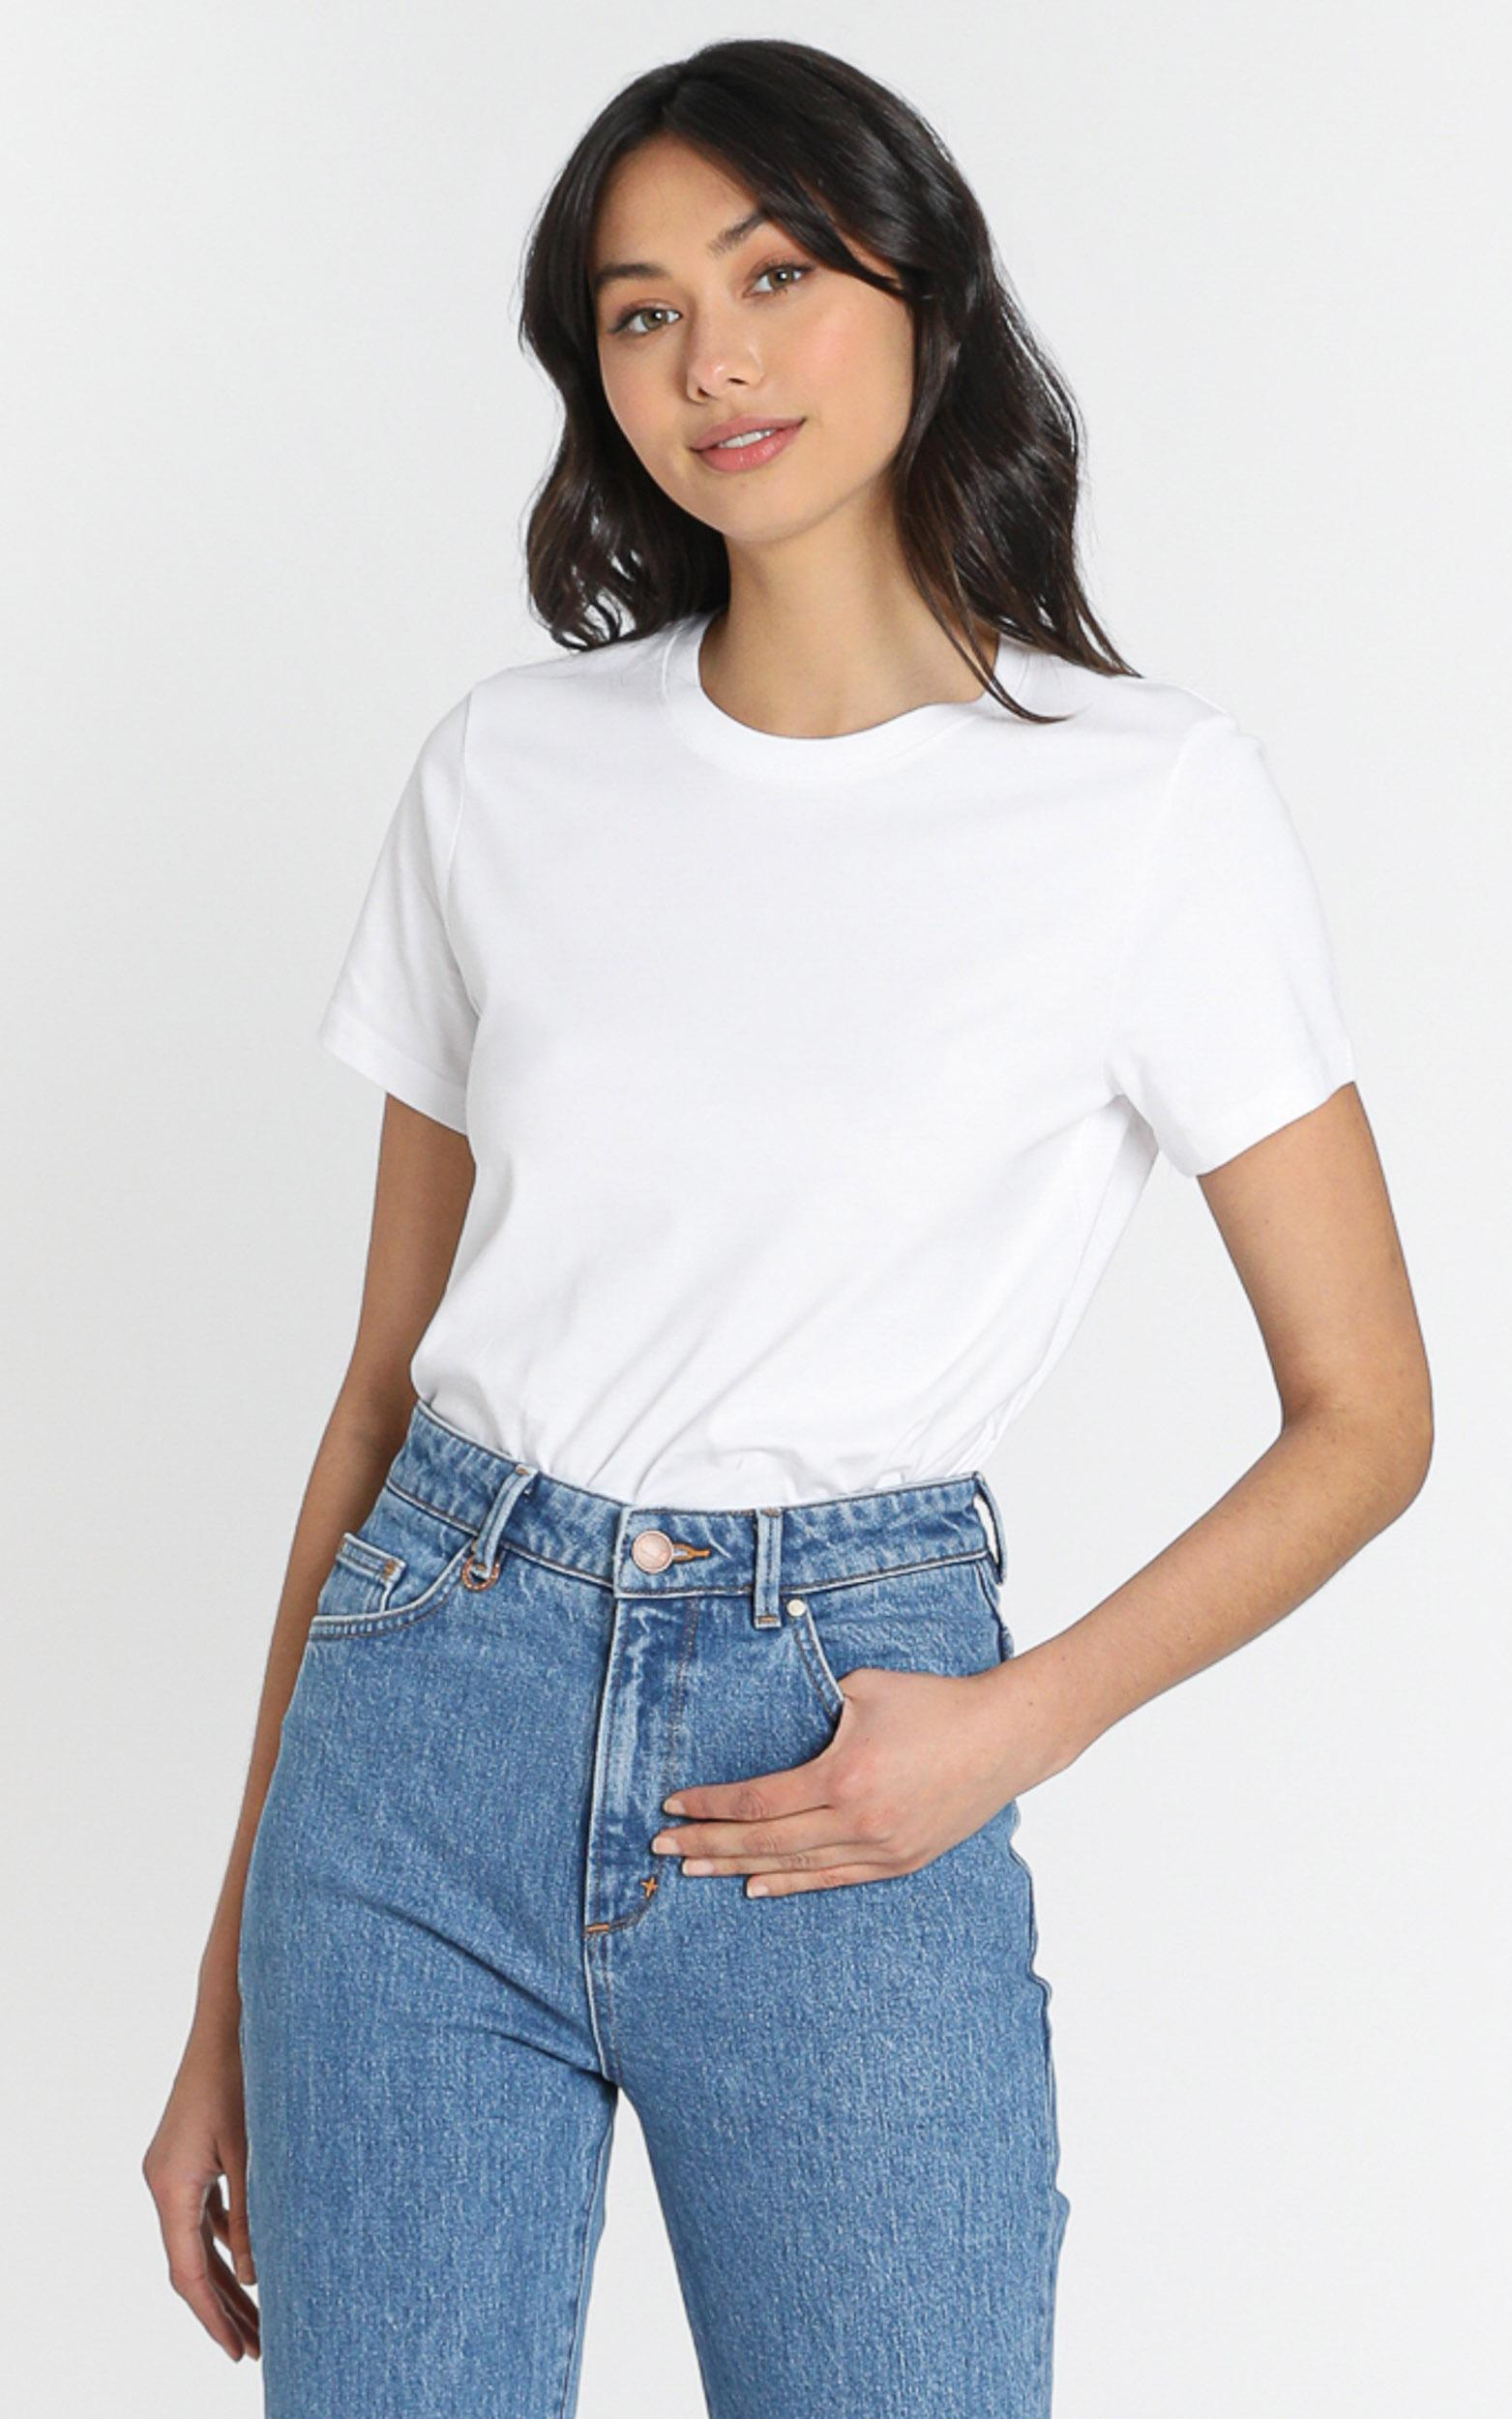 AS Colour - Maple Organic Tee in White - XS, White, hi-res image number null